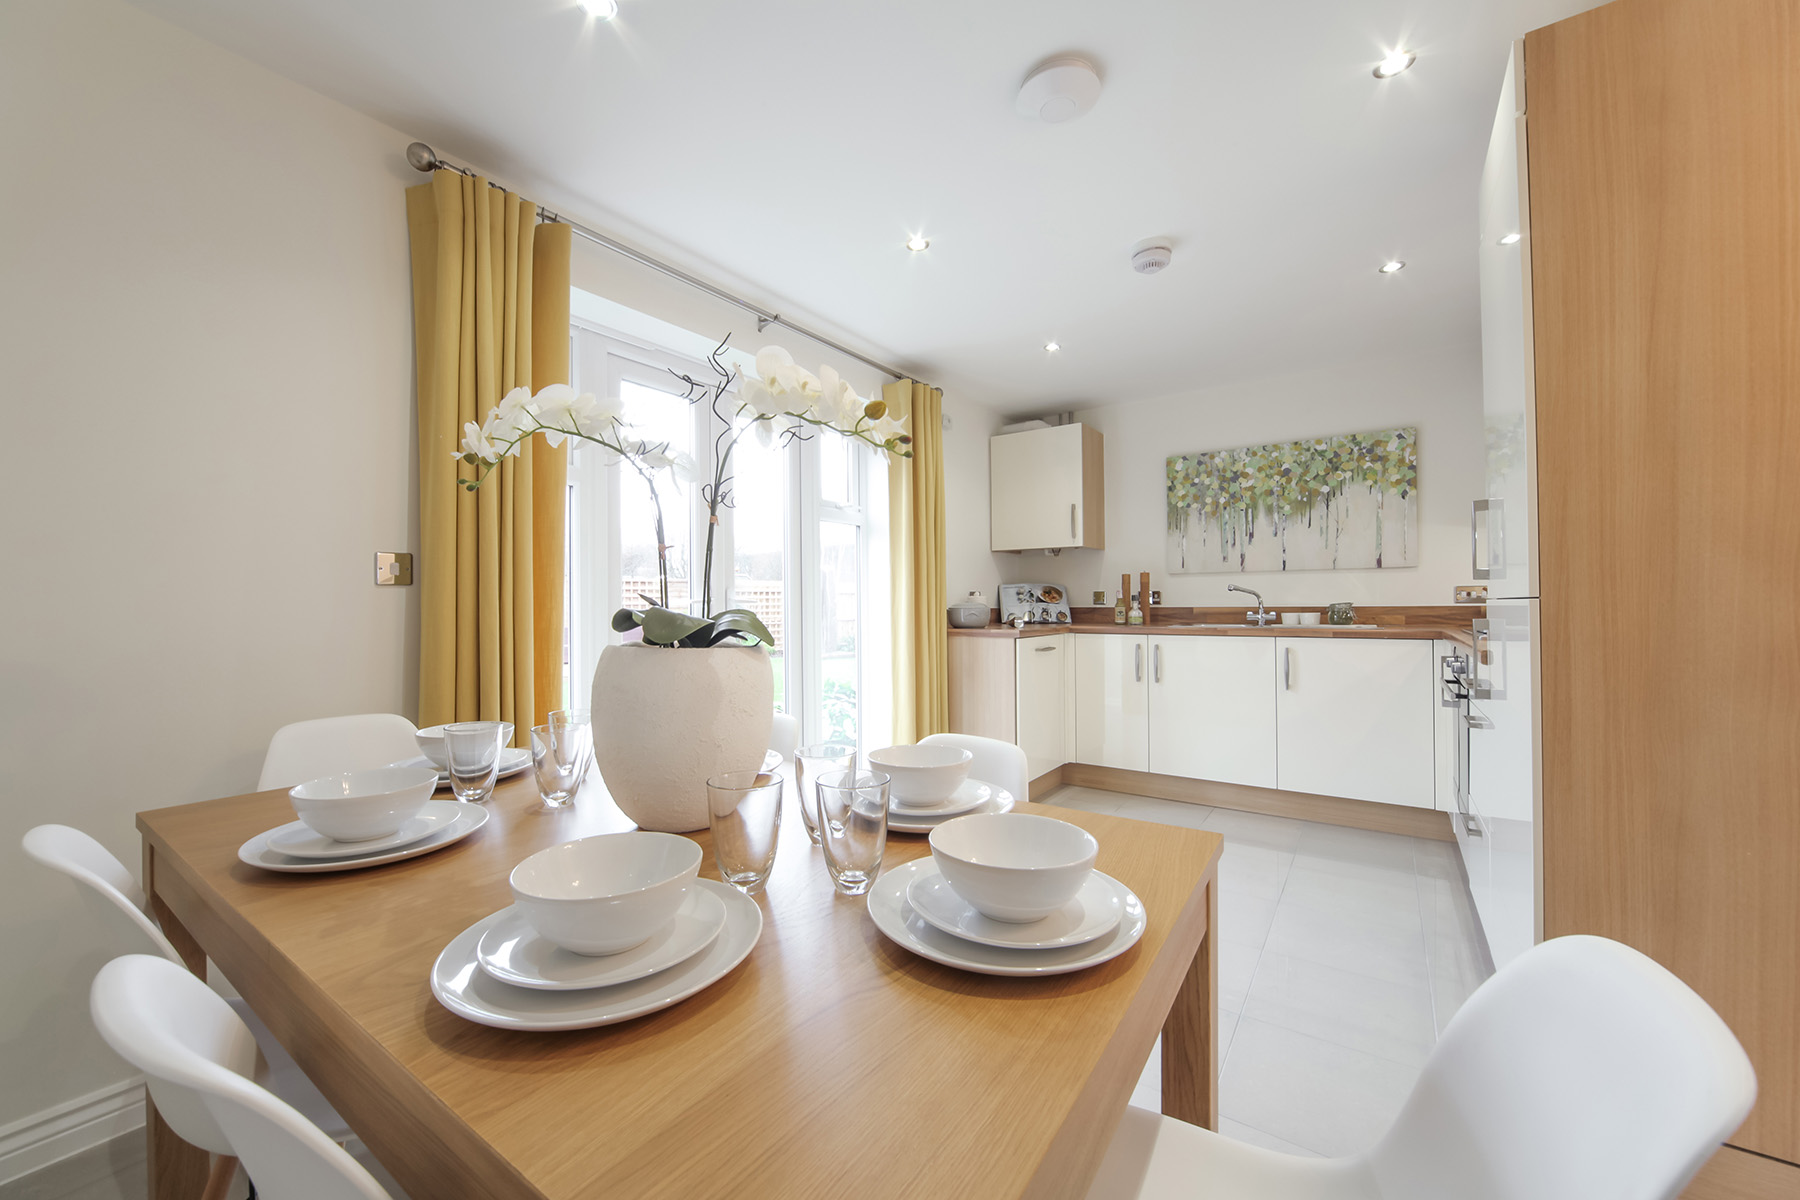 Taylor Wimpey - Cranbrook - Gosford example kitchen 2